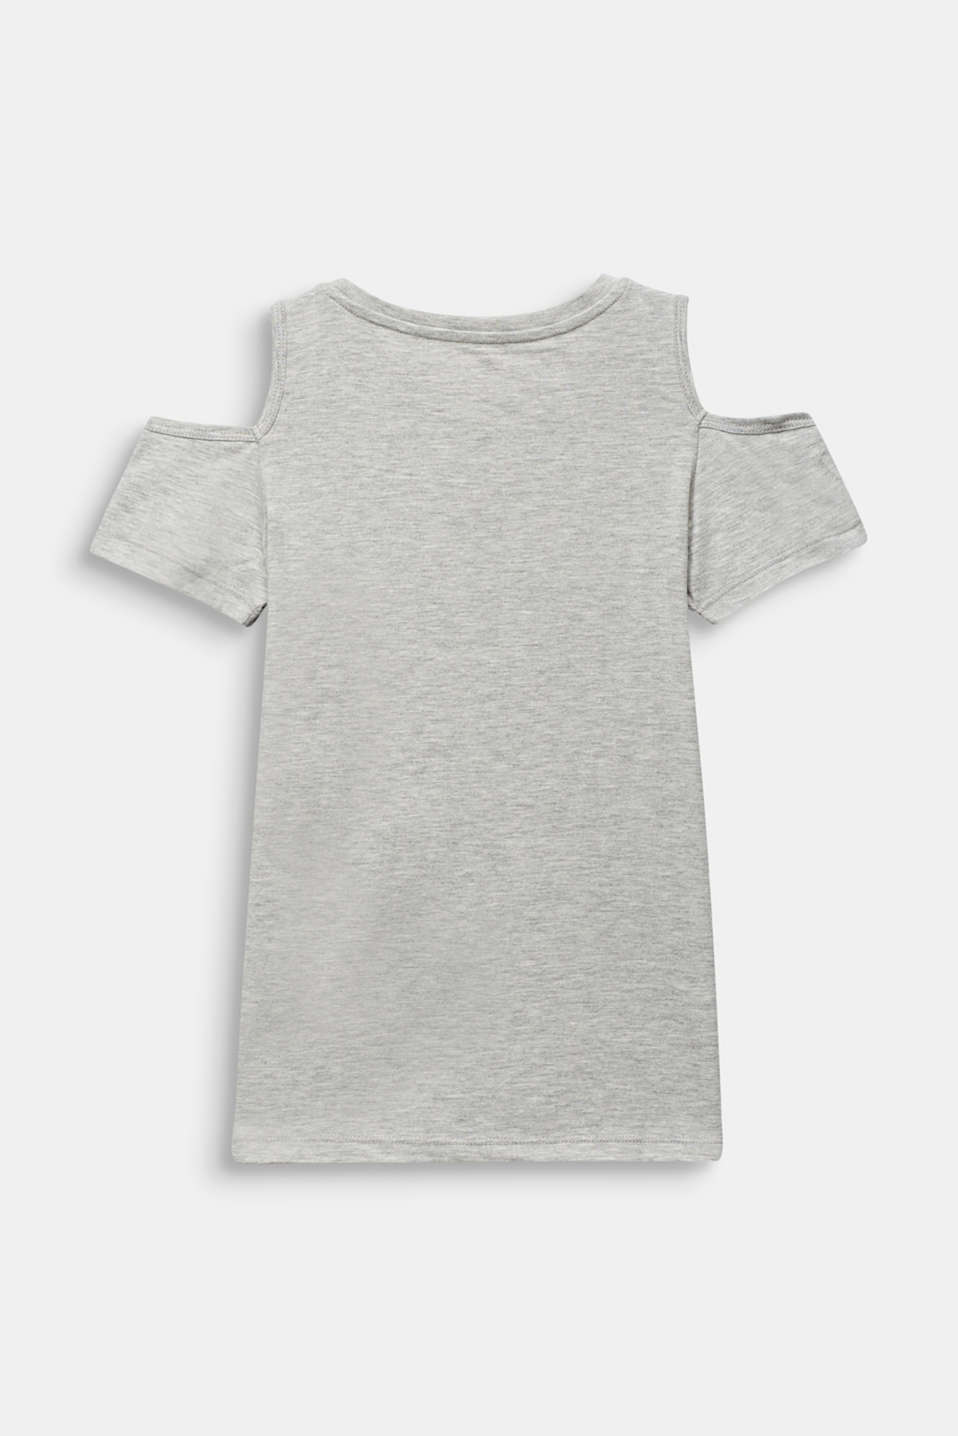 Cut-out T-shirt with sequins, made of cotton, LCHEATHER SILVER, detail image number 1